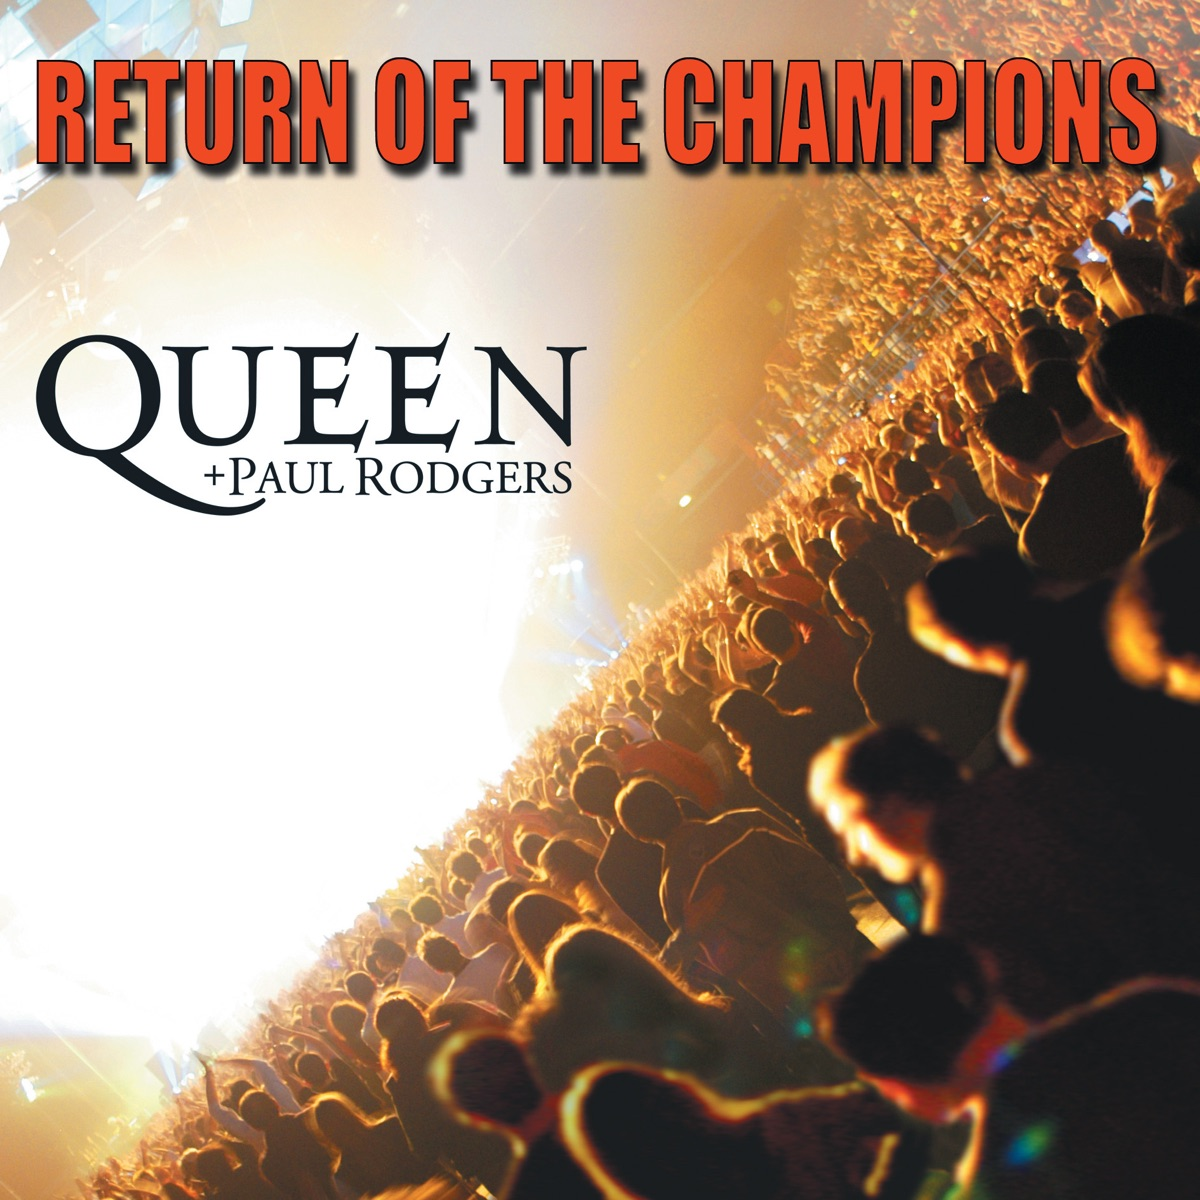 Return of the Champions Live Queen  Paul Rodgers CD cover